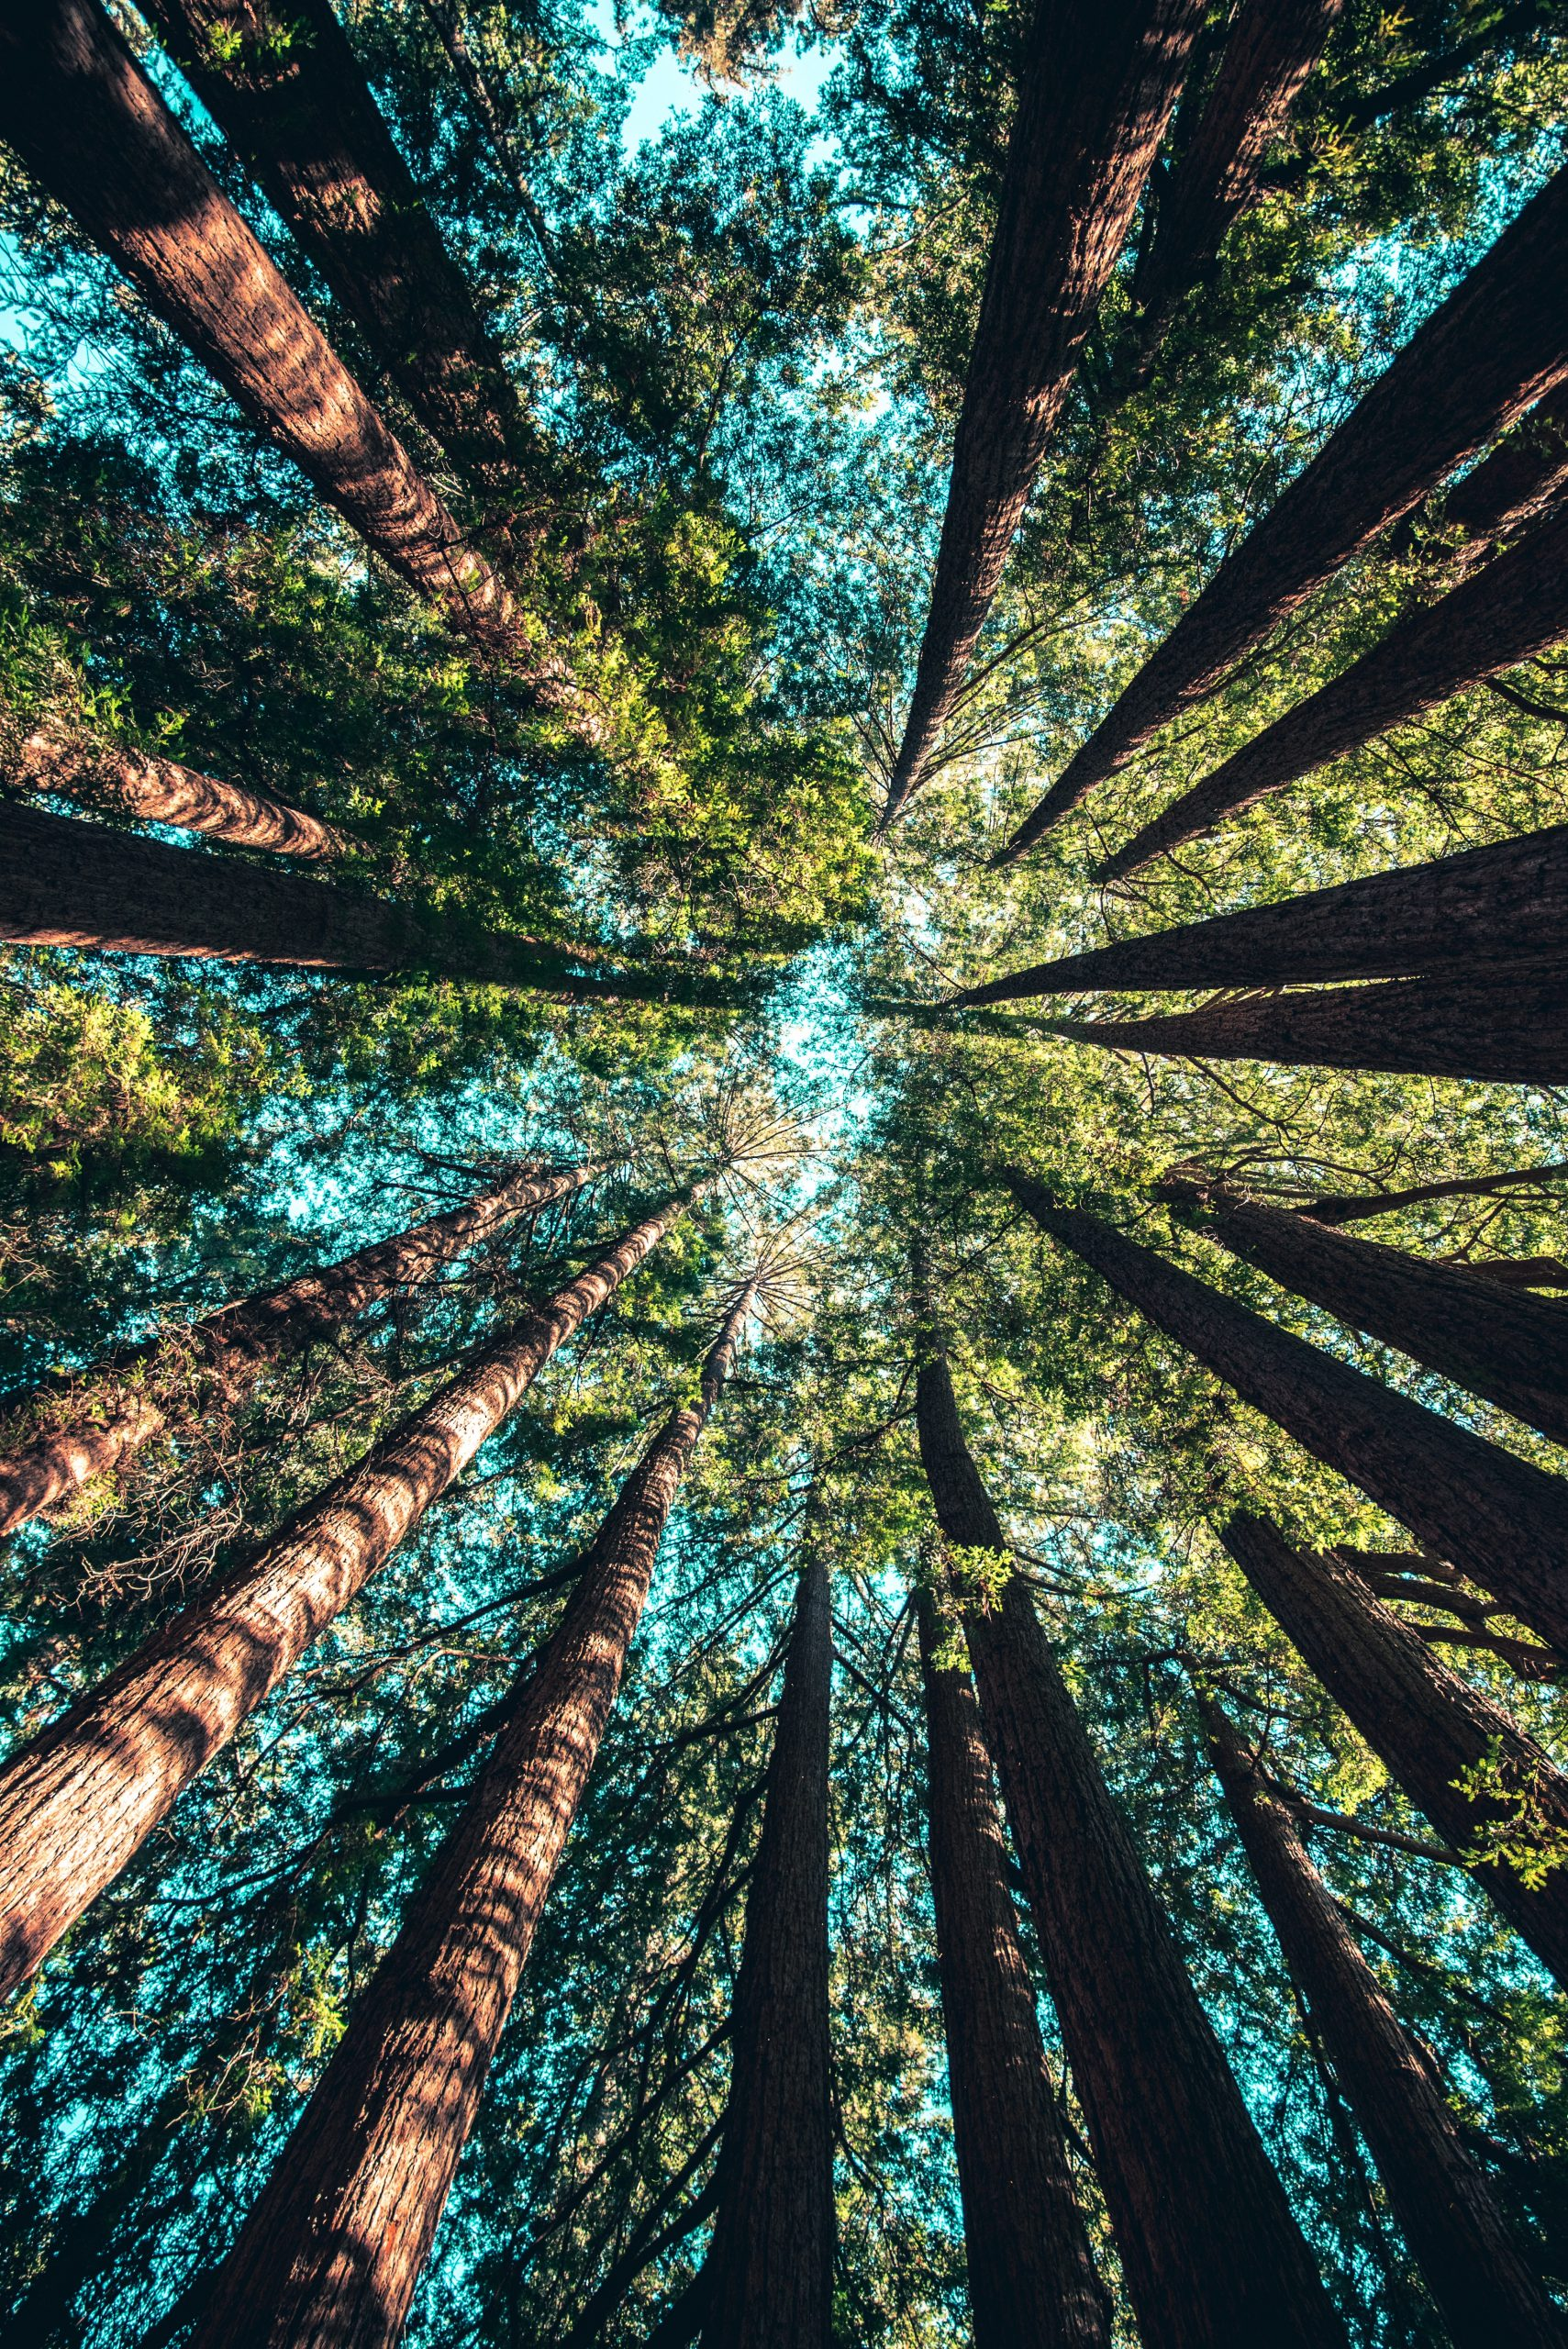 in a forest, looking up